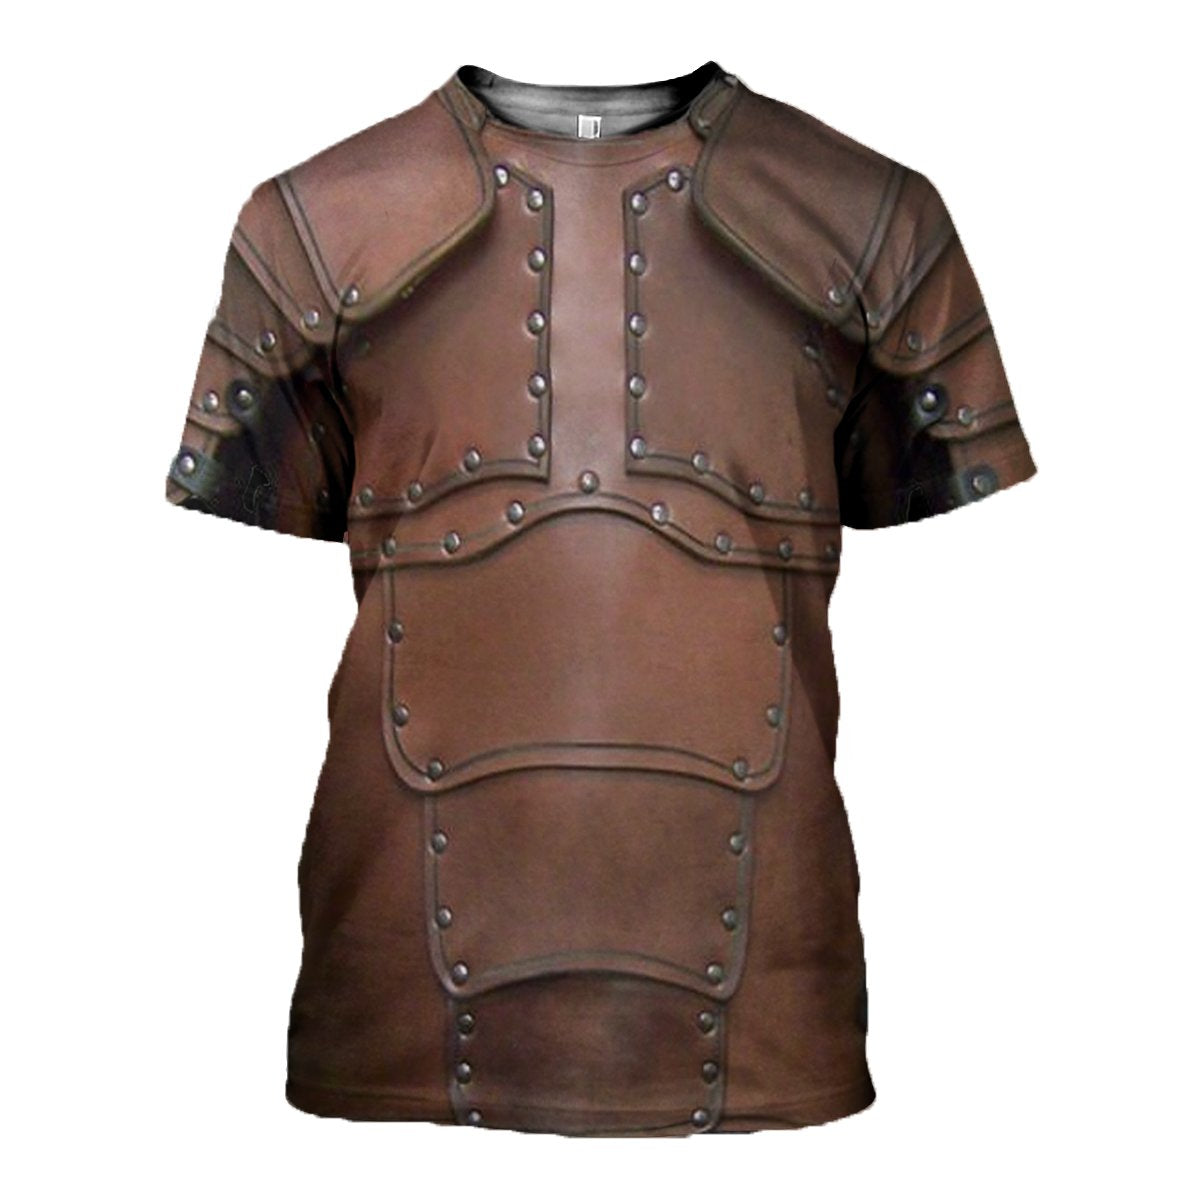 3D printed Leather Armor T-shirt Hoodie